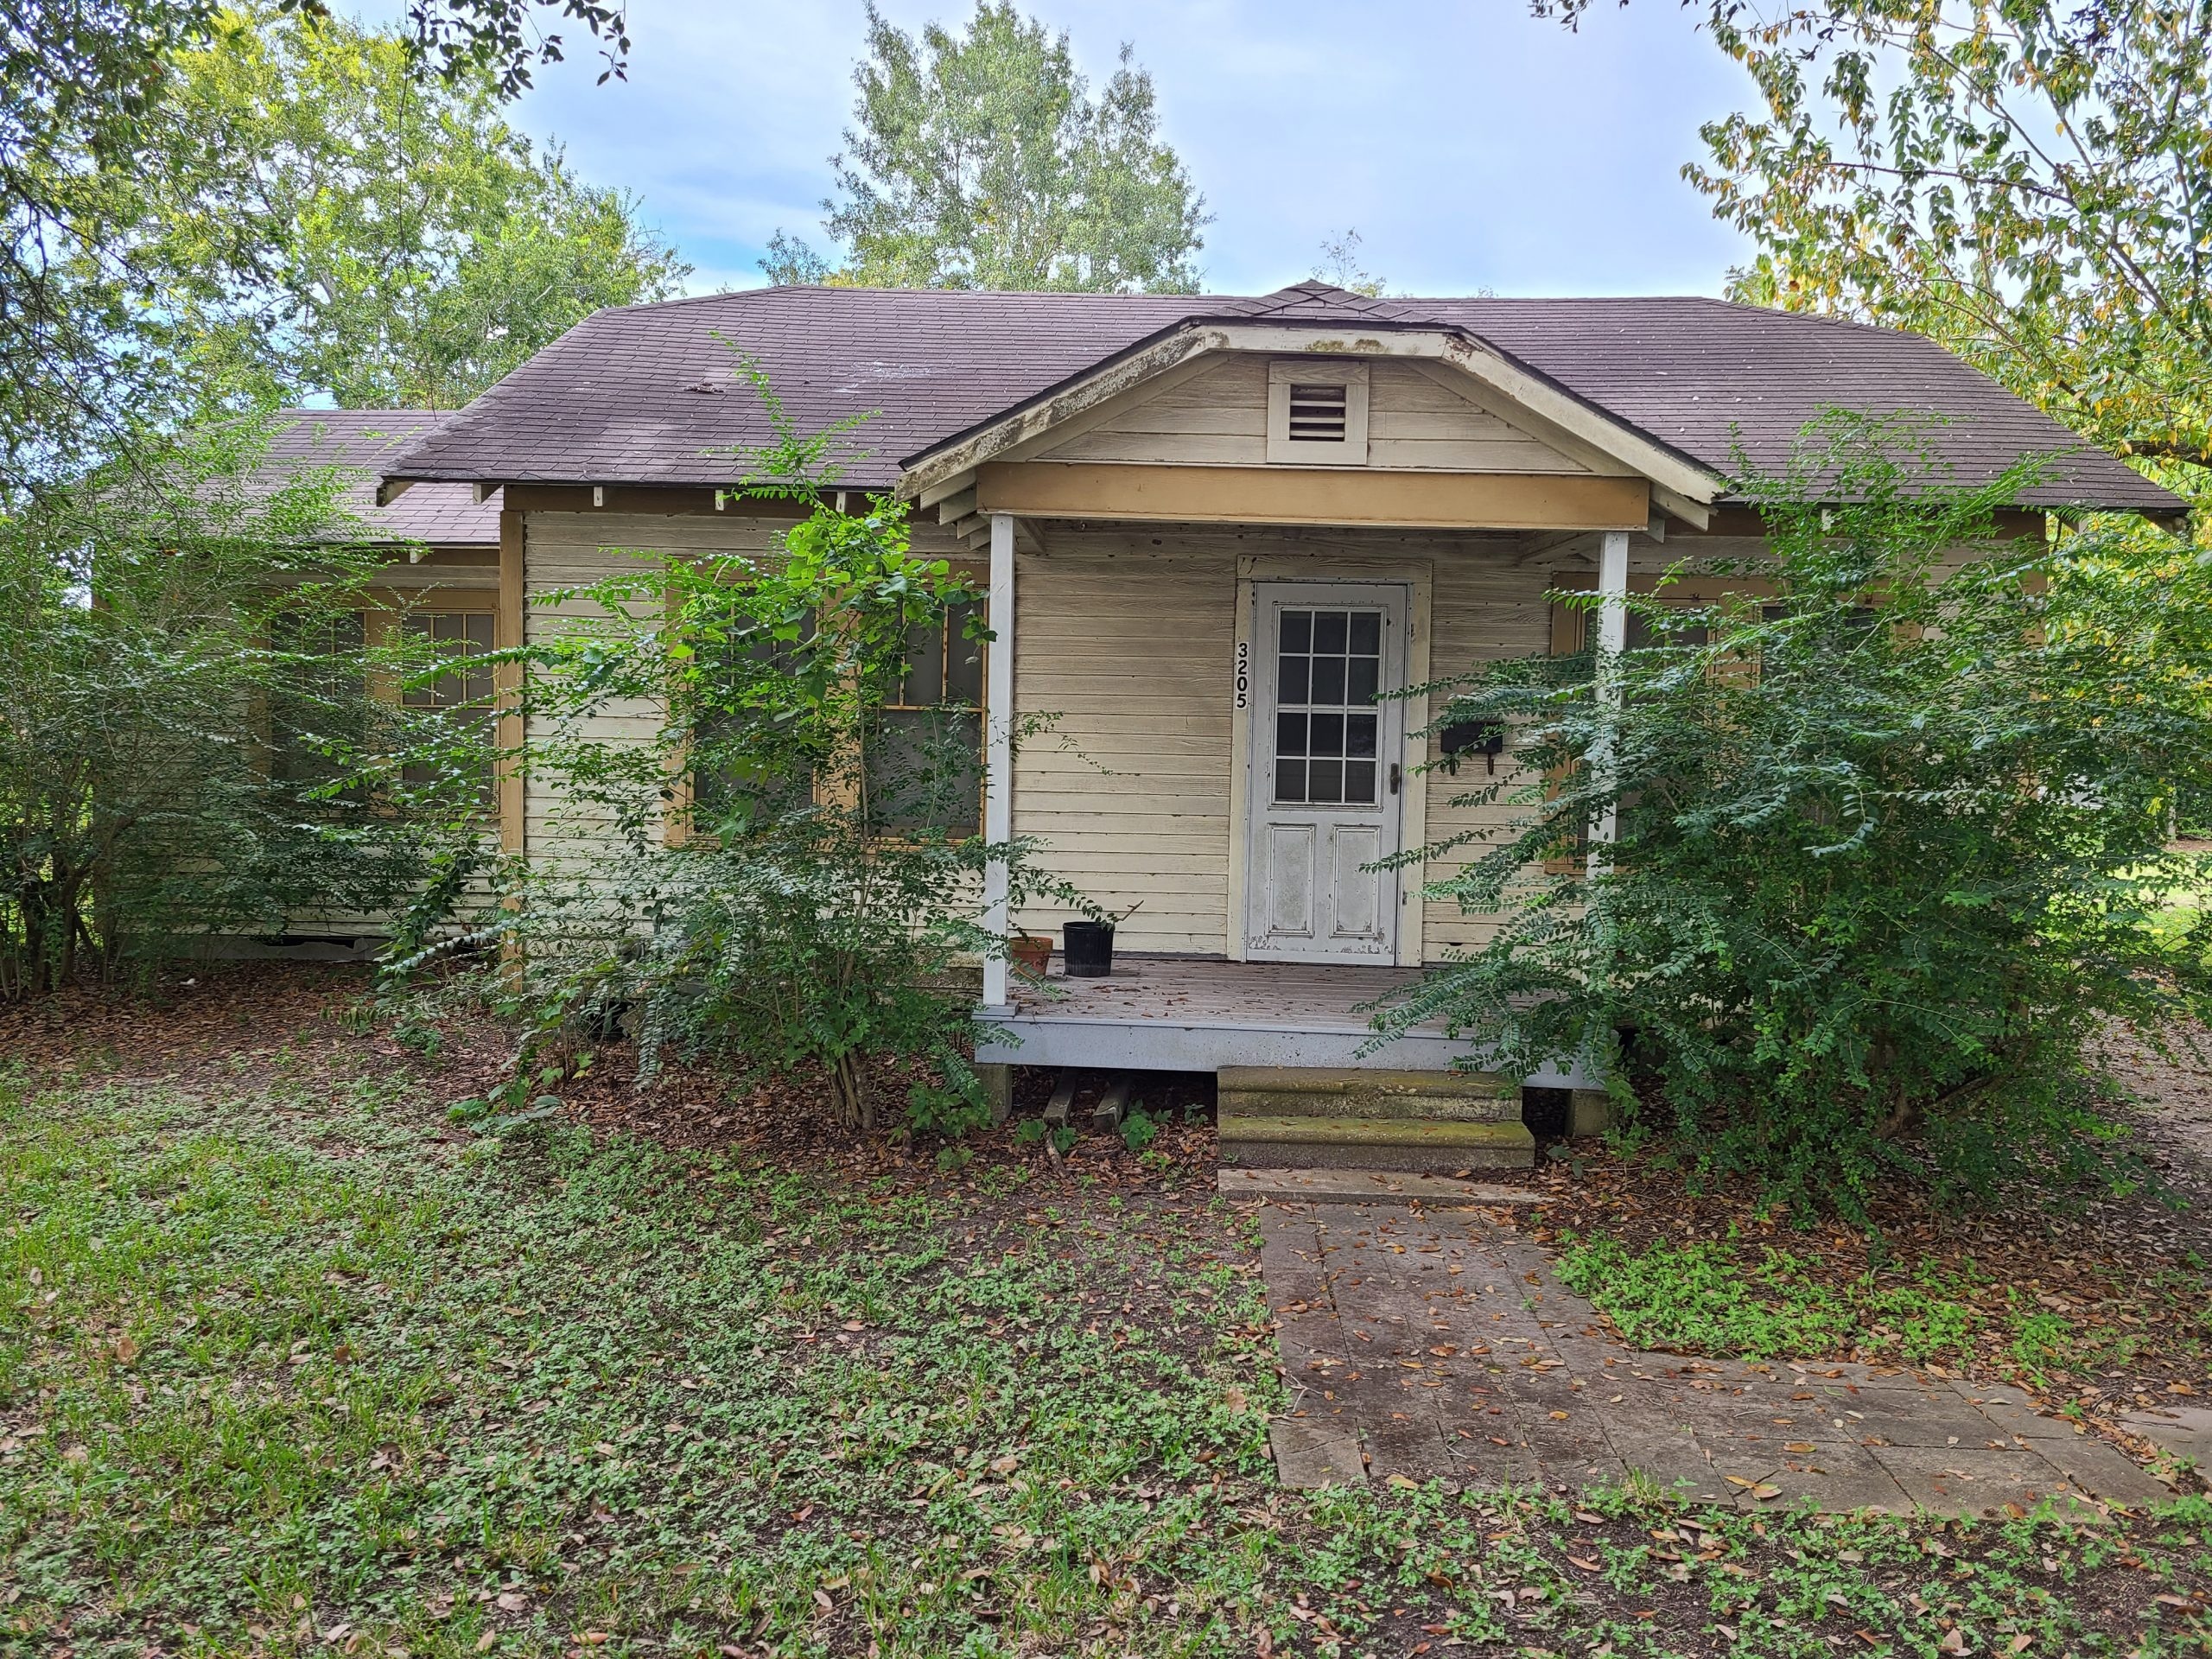 3201 & 3205 5th St – Investor Special!